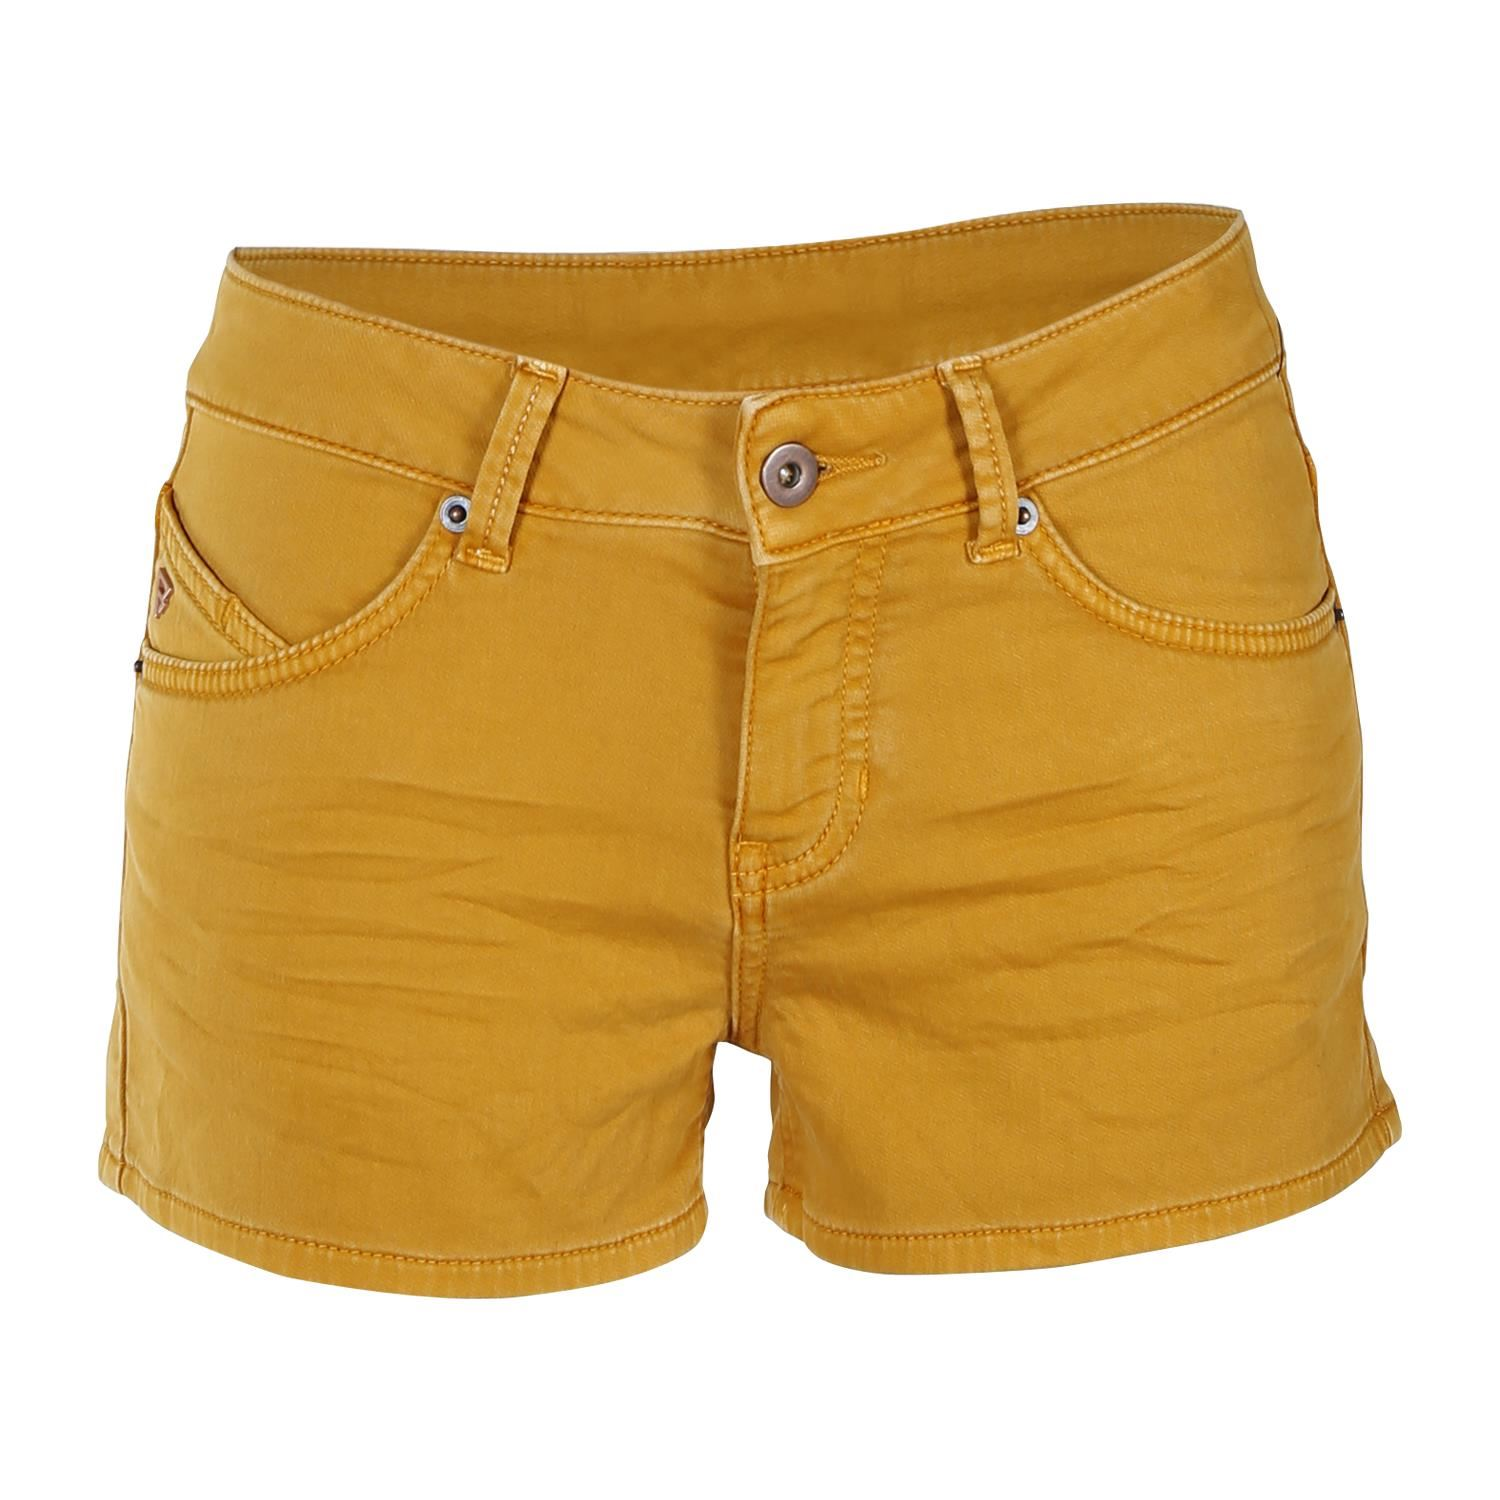 Brunotti Lara-Colour  (gelb) - damen casual shorts - Brunotti online shop